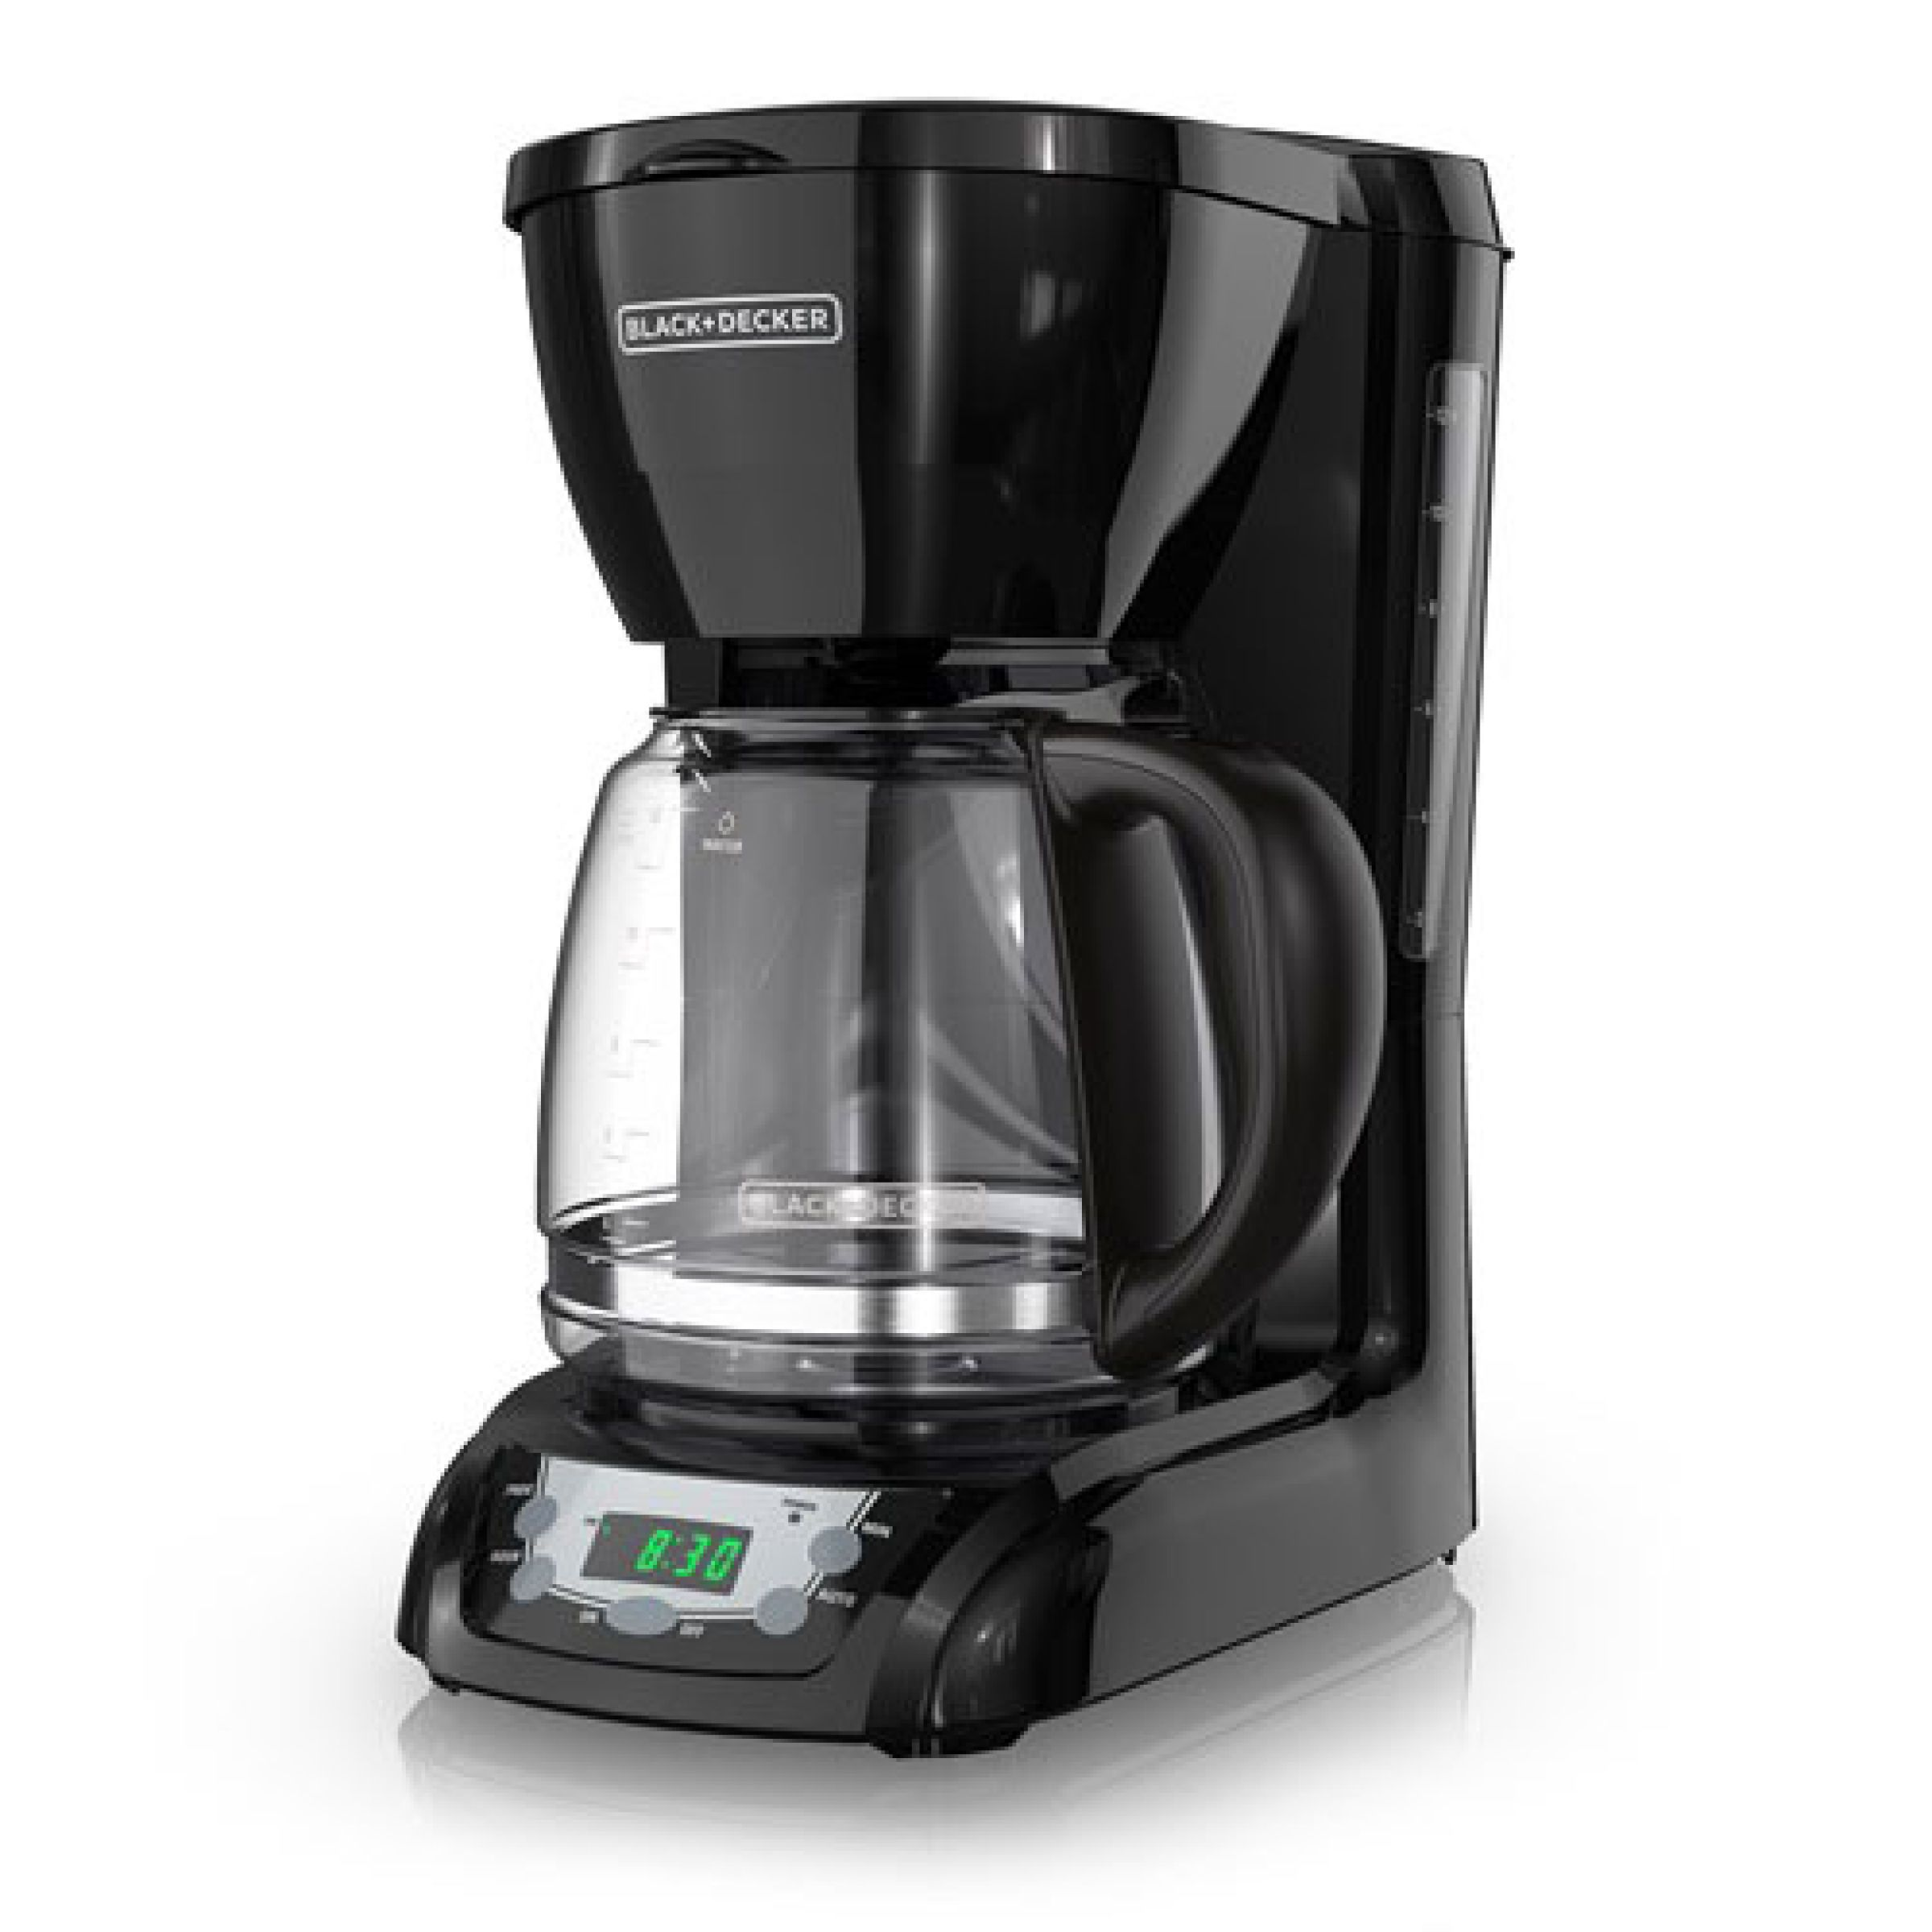 Black u decker cup programmable coffee maker dlx home